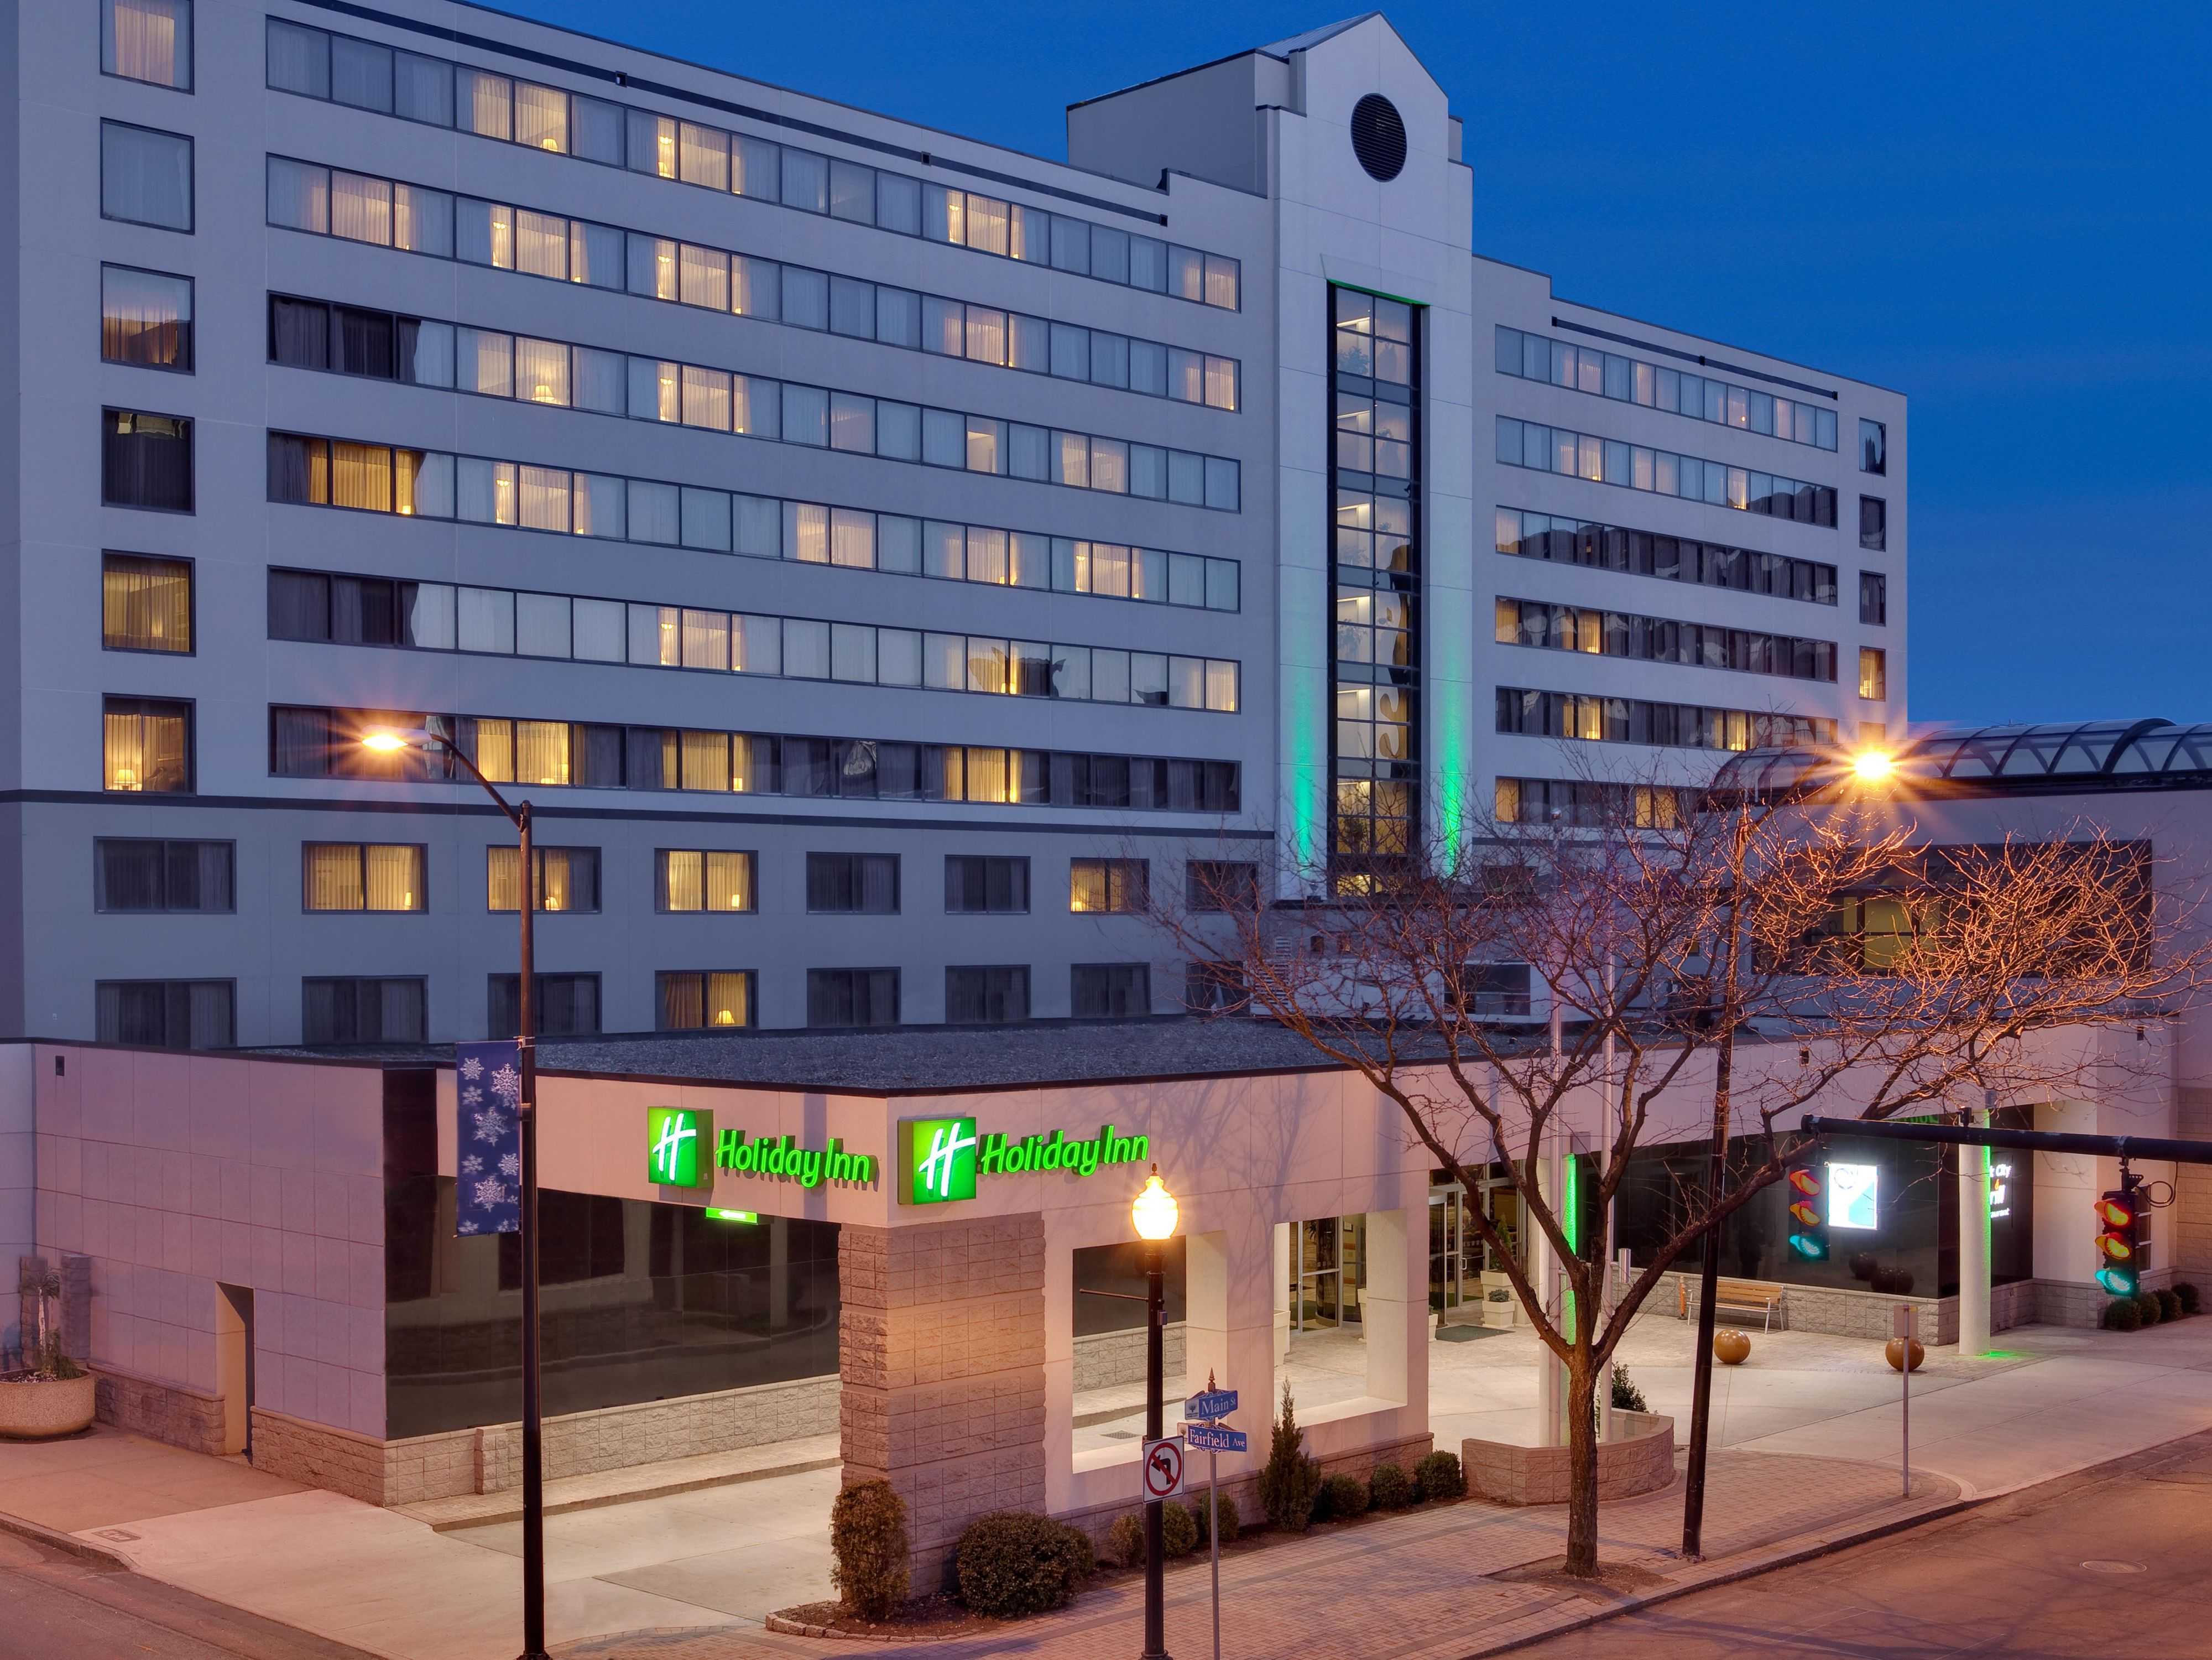 Image of the Holiday Inn in Bridgeport Connecticut